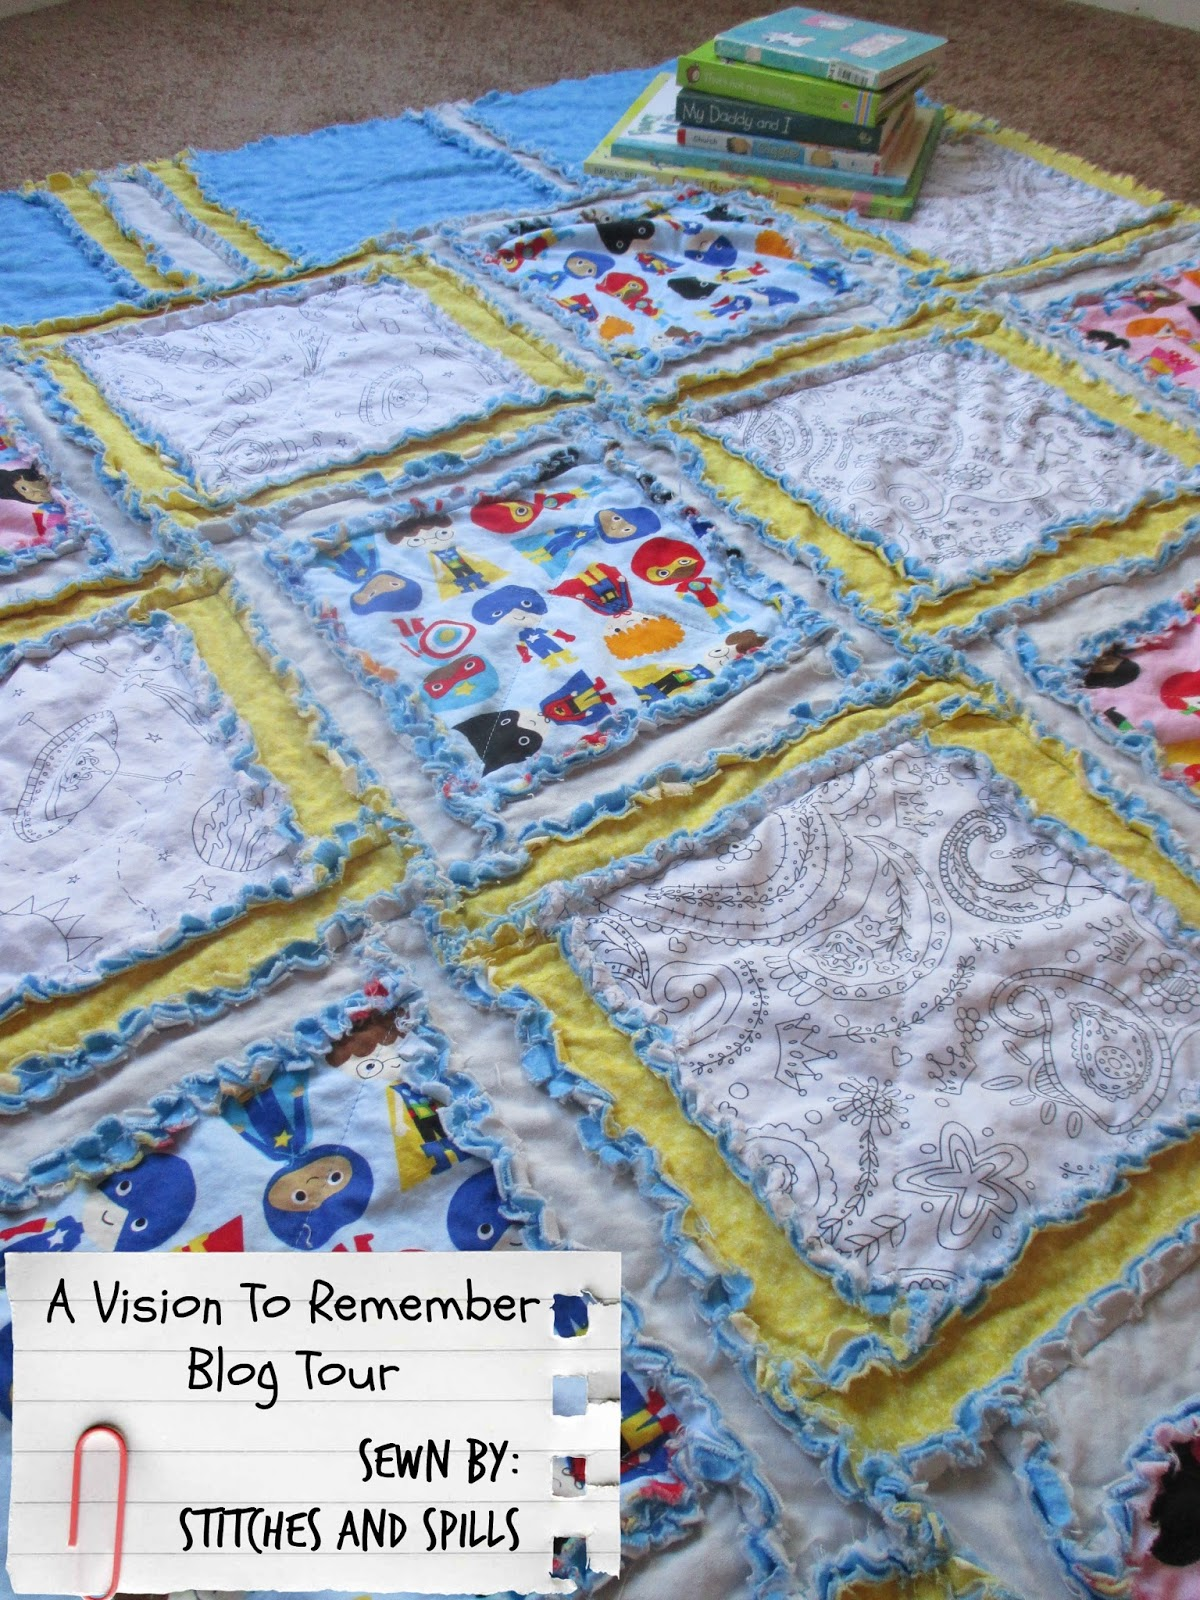 Stitches and spills a vision to remember blog tour easy peasy rag a vision to remember blog tour easy peasy rag quilt gumiabroncs Gallery